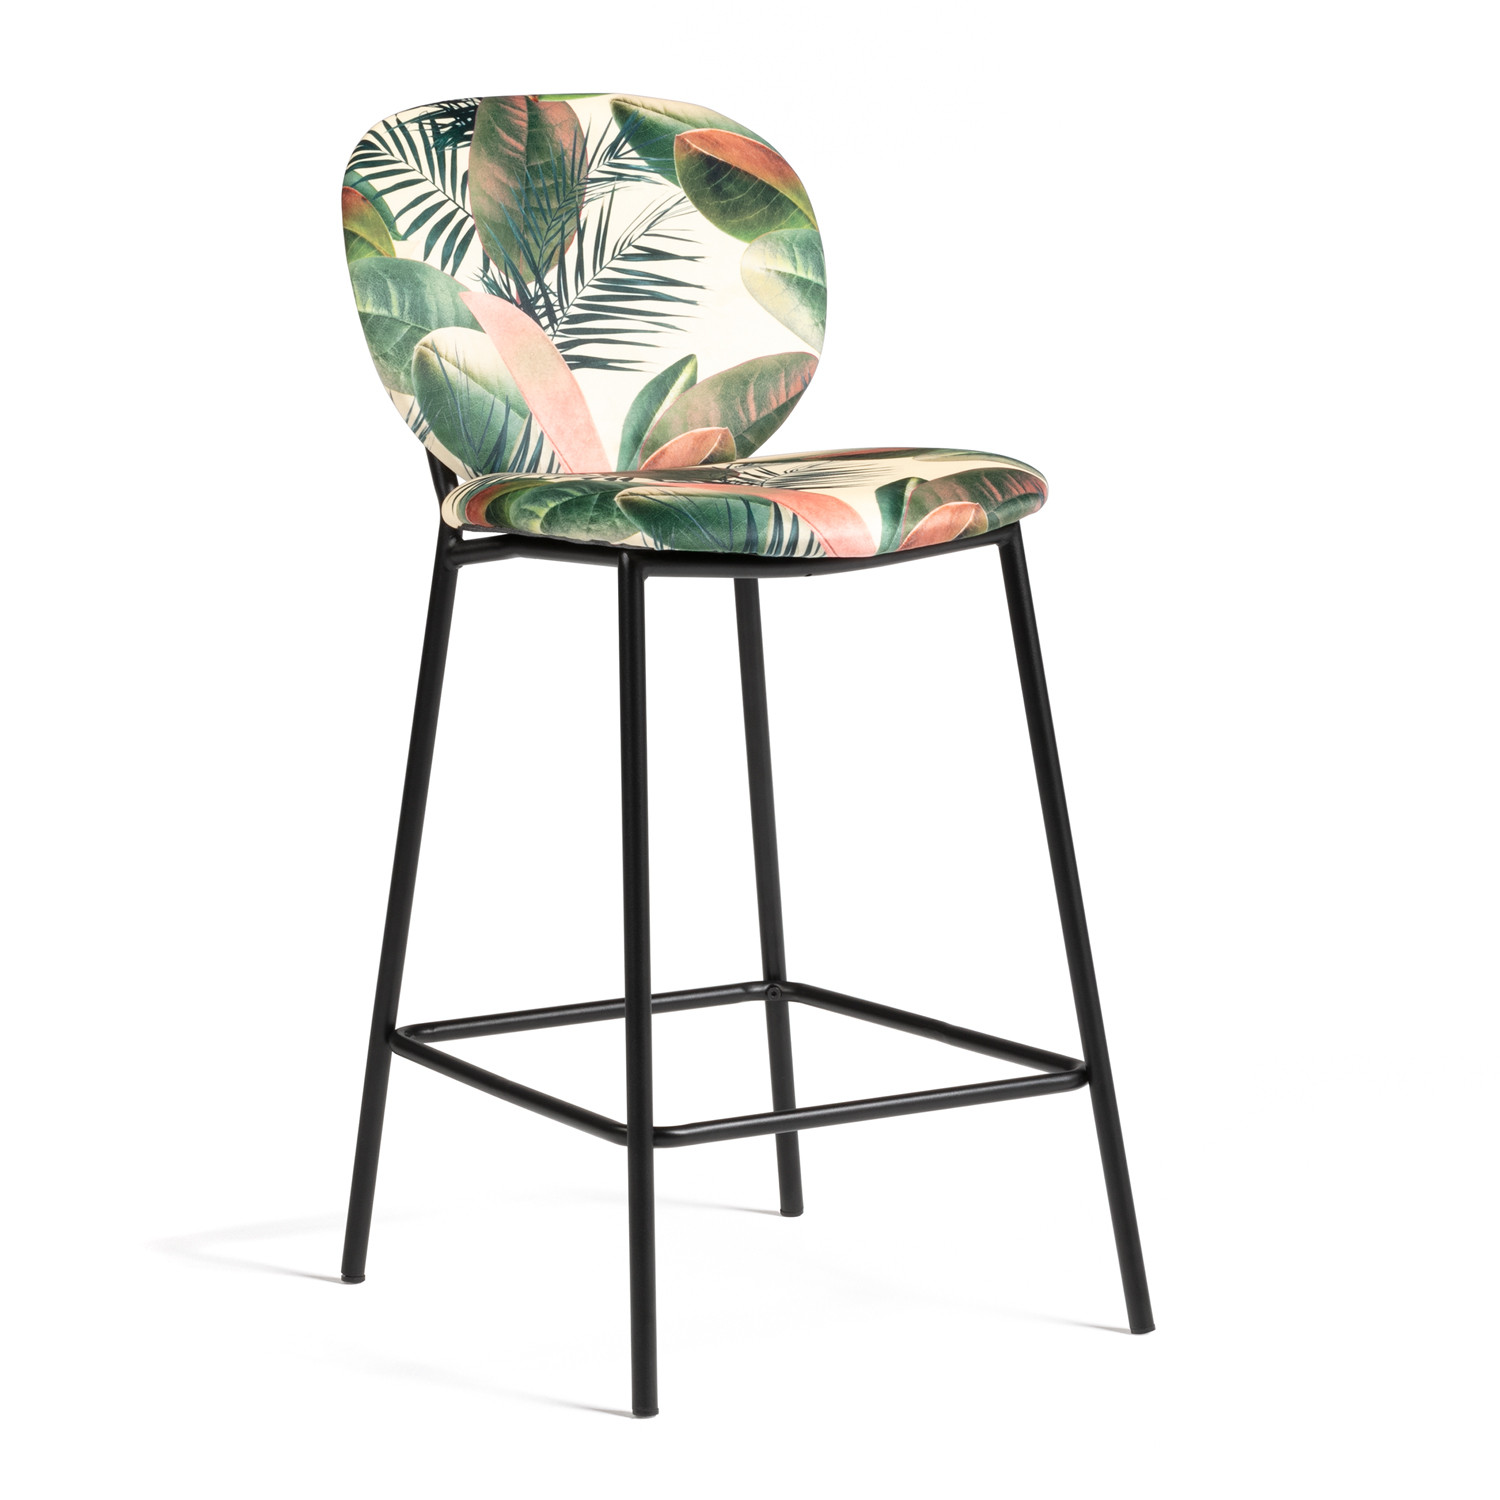 chaise haute bar tabouret scandinave bois naturel patchwork couleur mobistyl